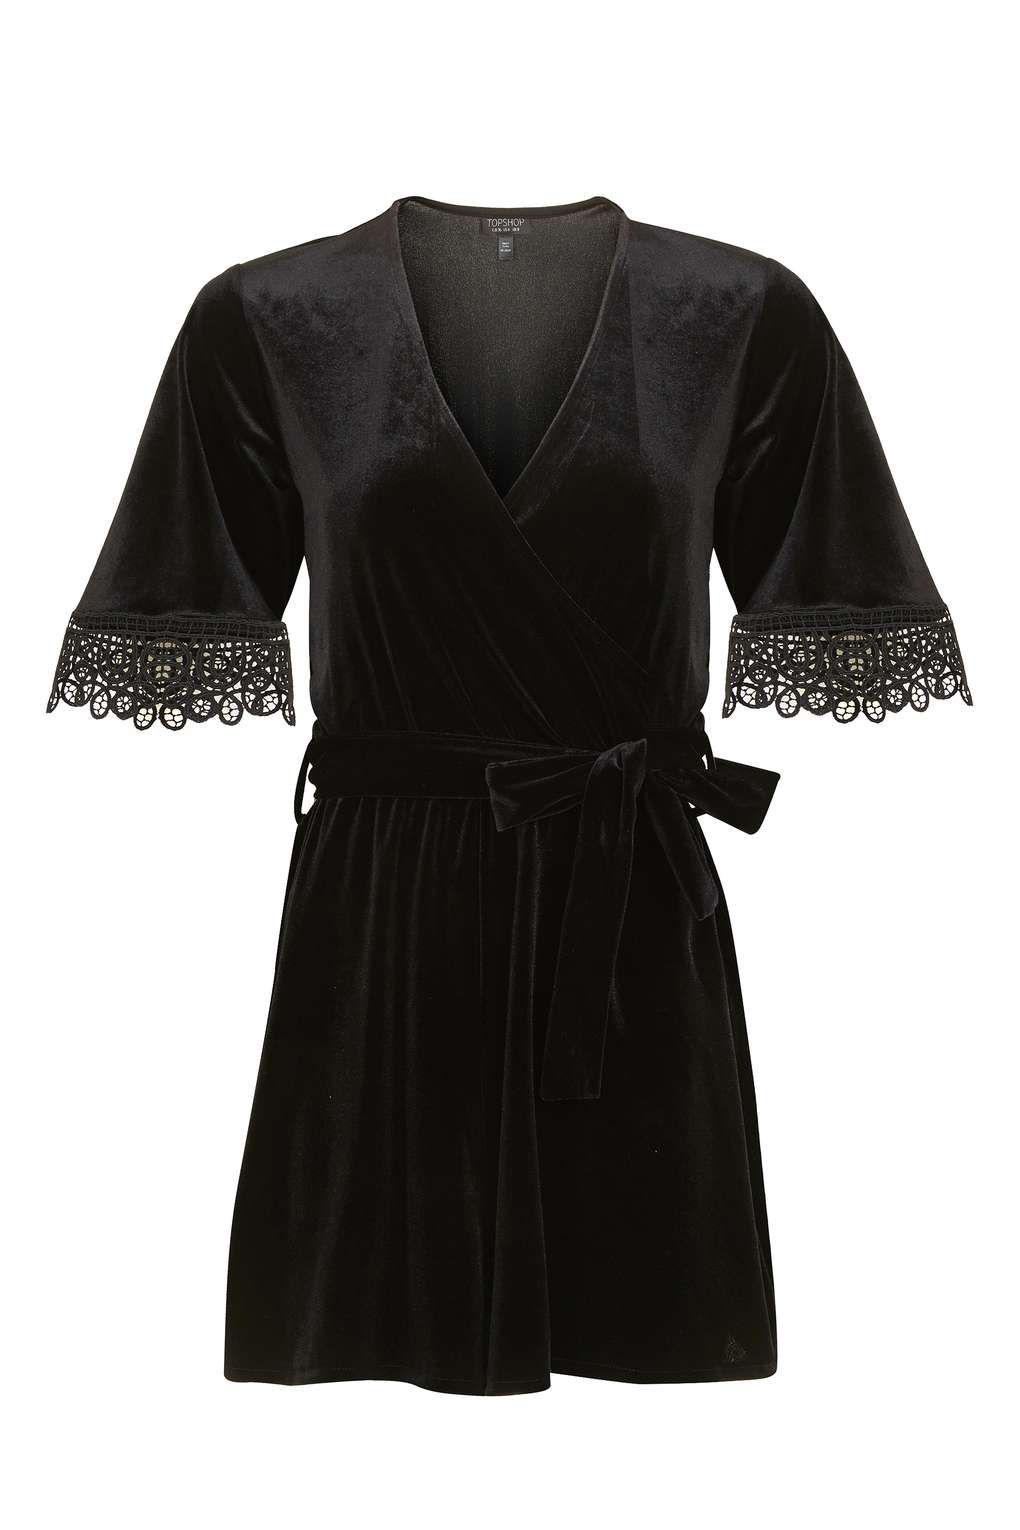 Velvet Wrap Playsuit - Playsuits and Jumpsuits - Clothing - Topshop Europe 7f06f7f234